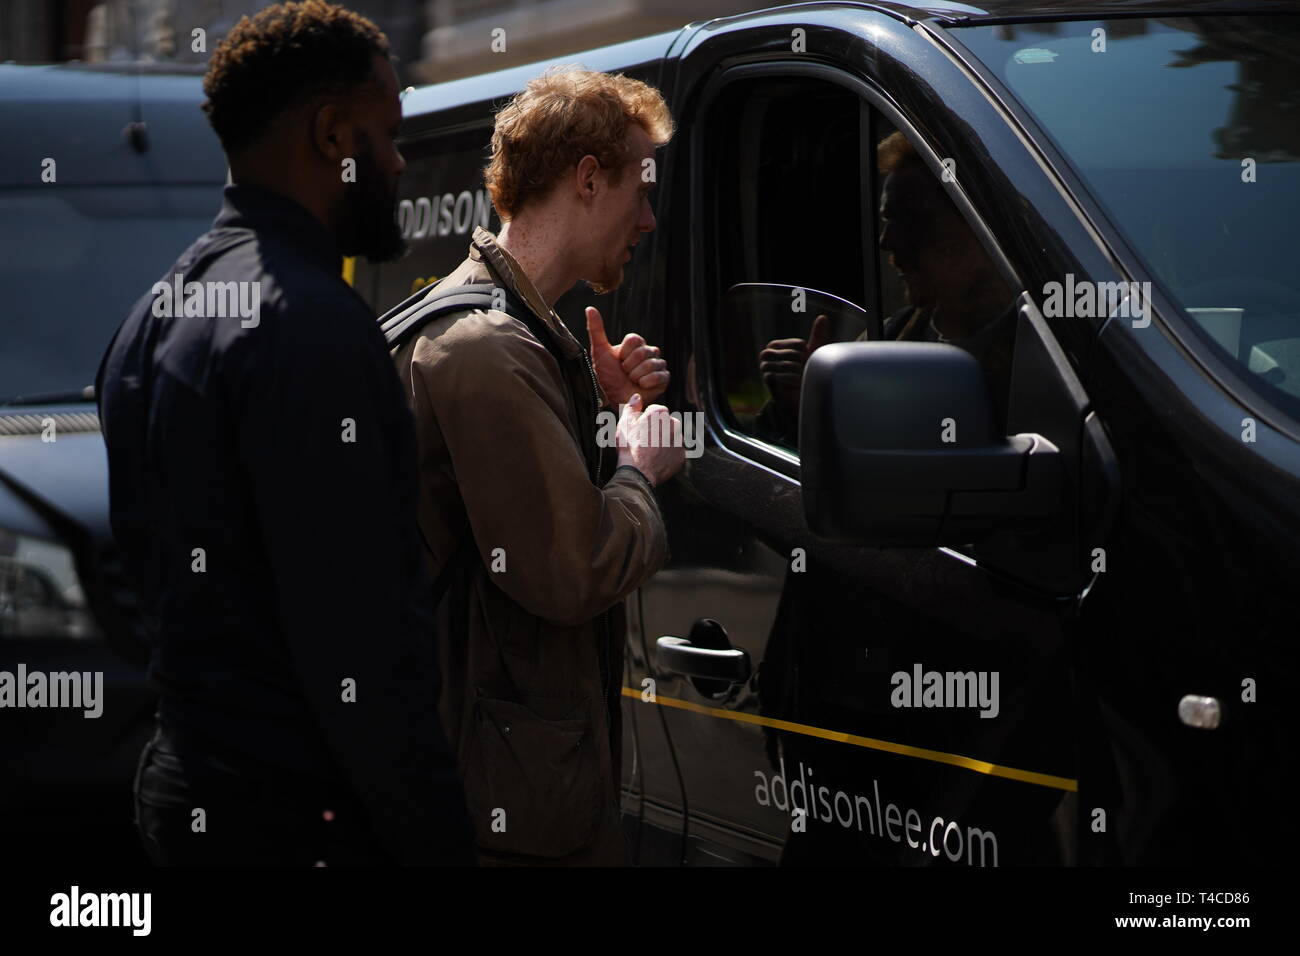 Extinction Rebellion protestors explain to drivers why they are blocking the roads in Central London. Stock Photo